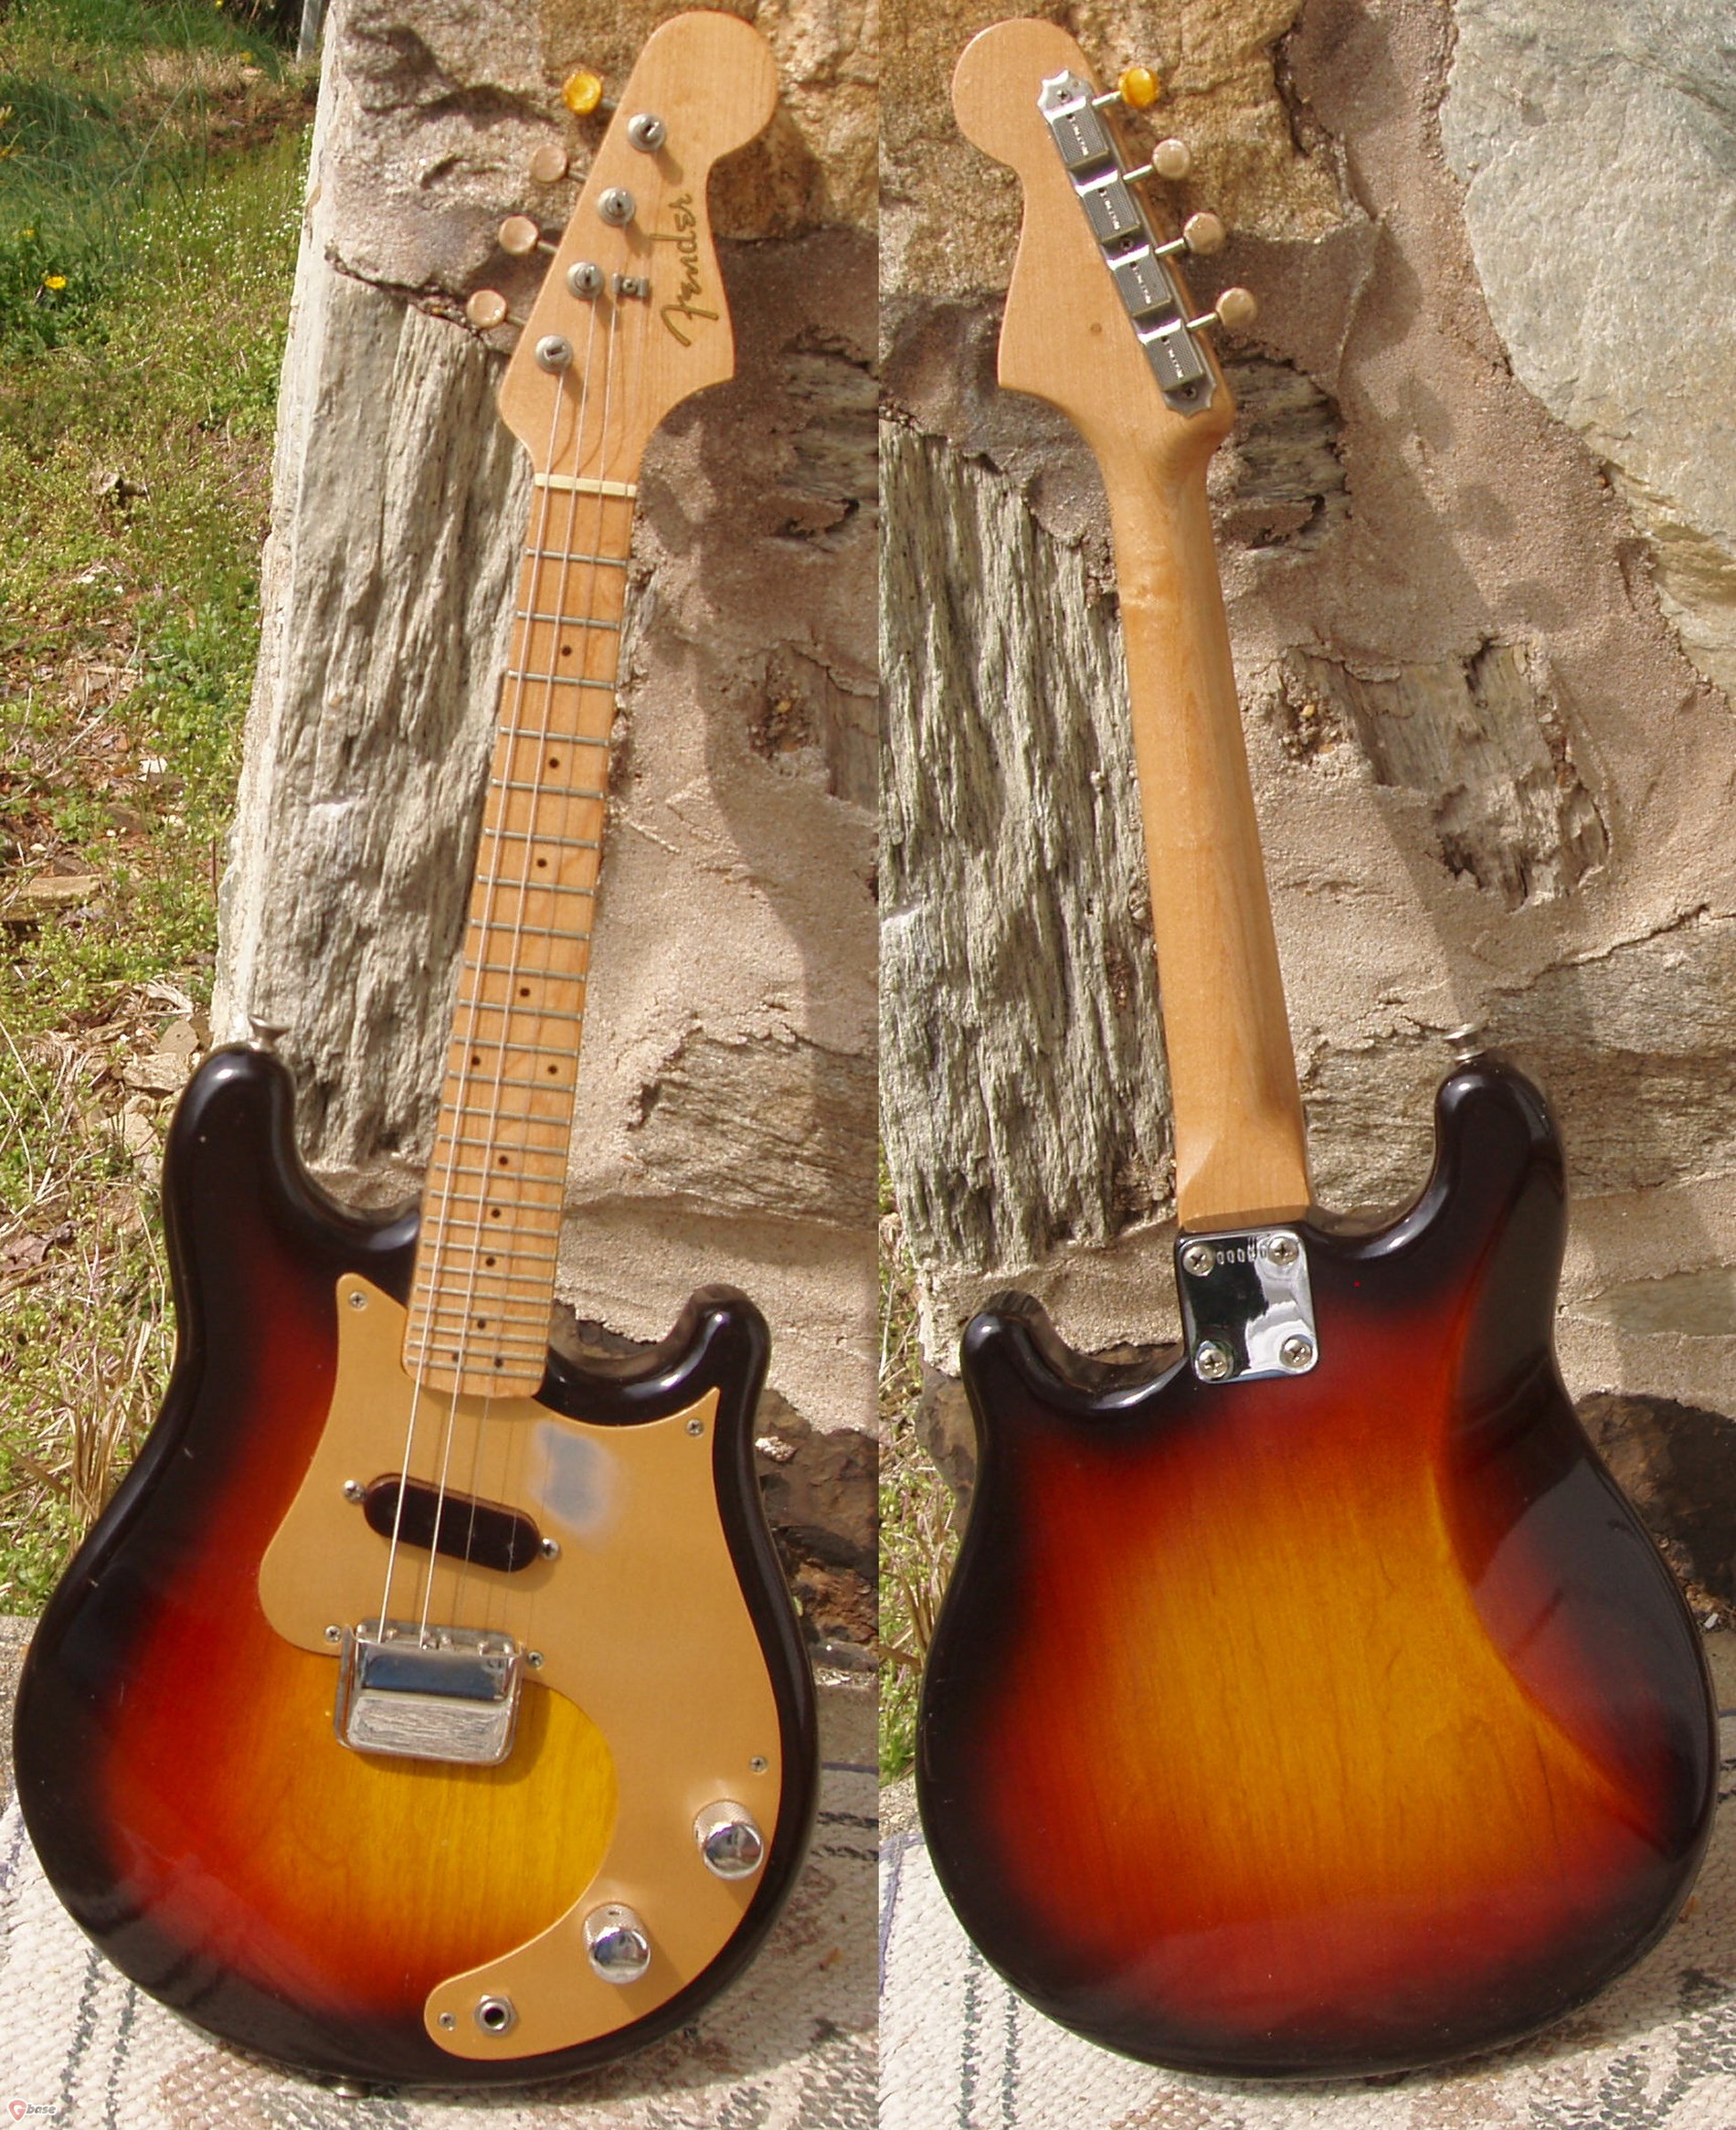 fender mandocaster 1957 sunburst stringed instrument for sale neal 39 s guitars. Black Bedroom Furniture Sets. Home Design Ideas